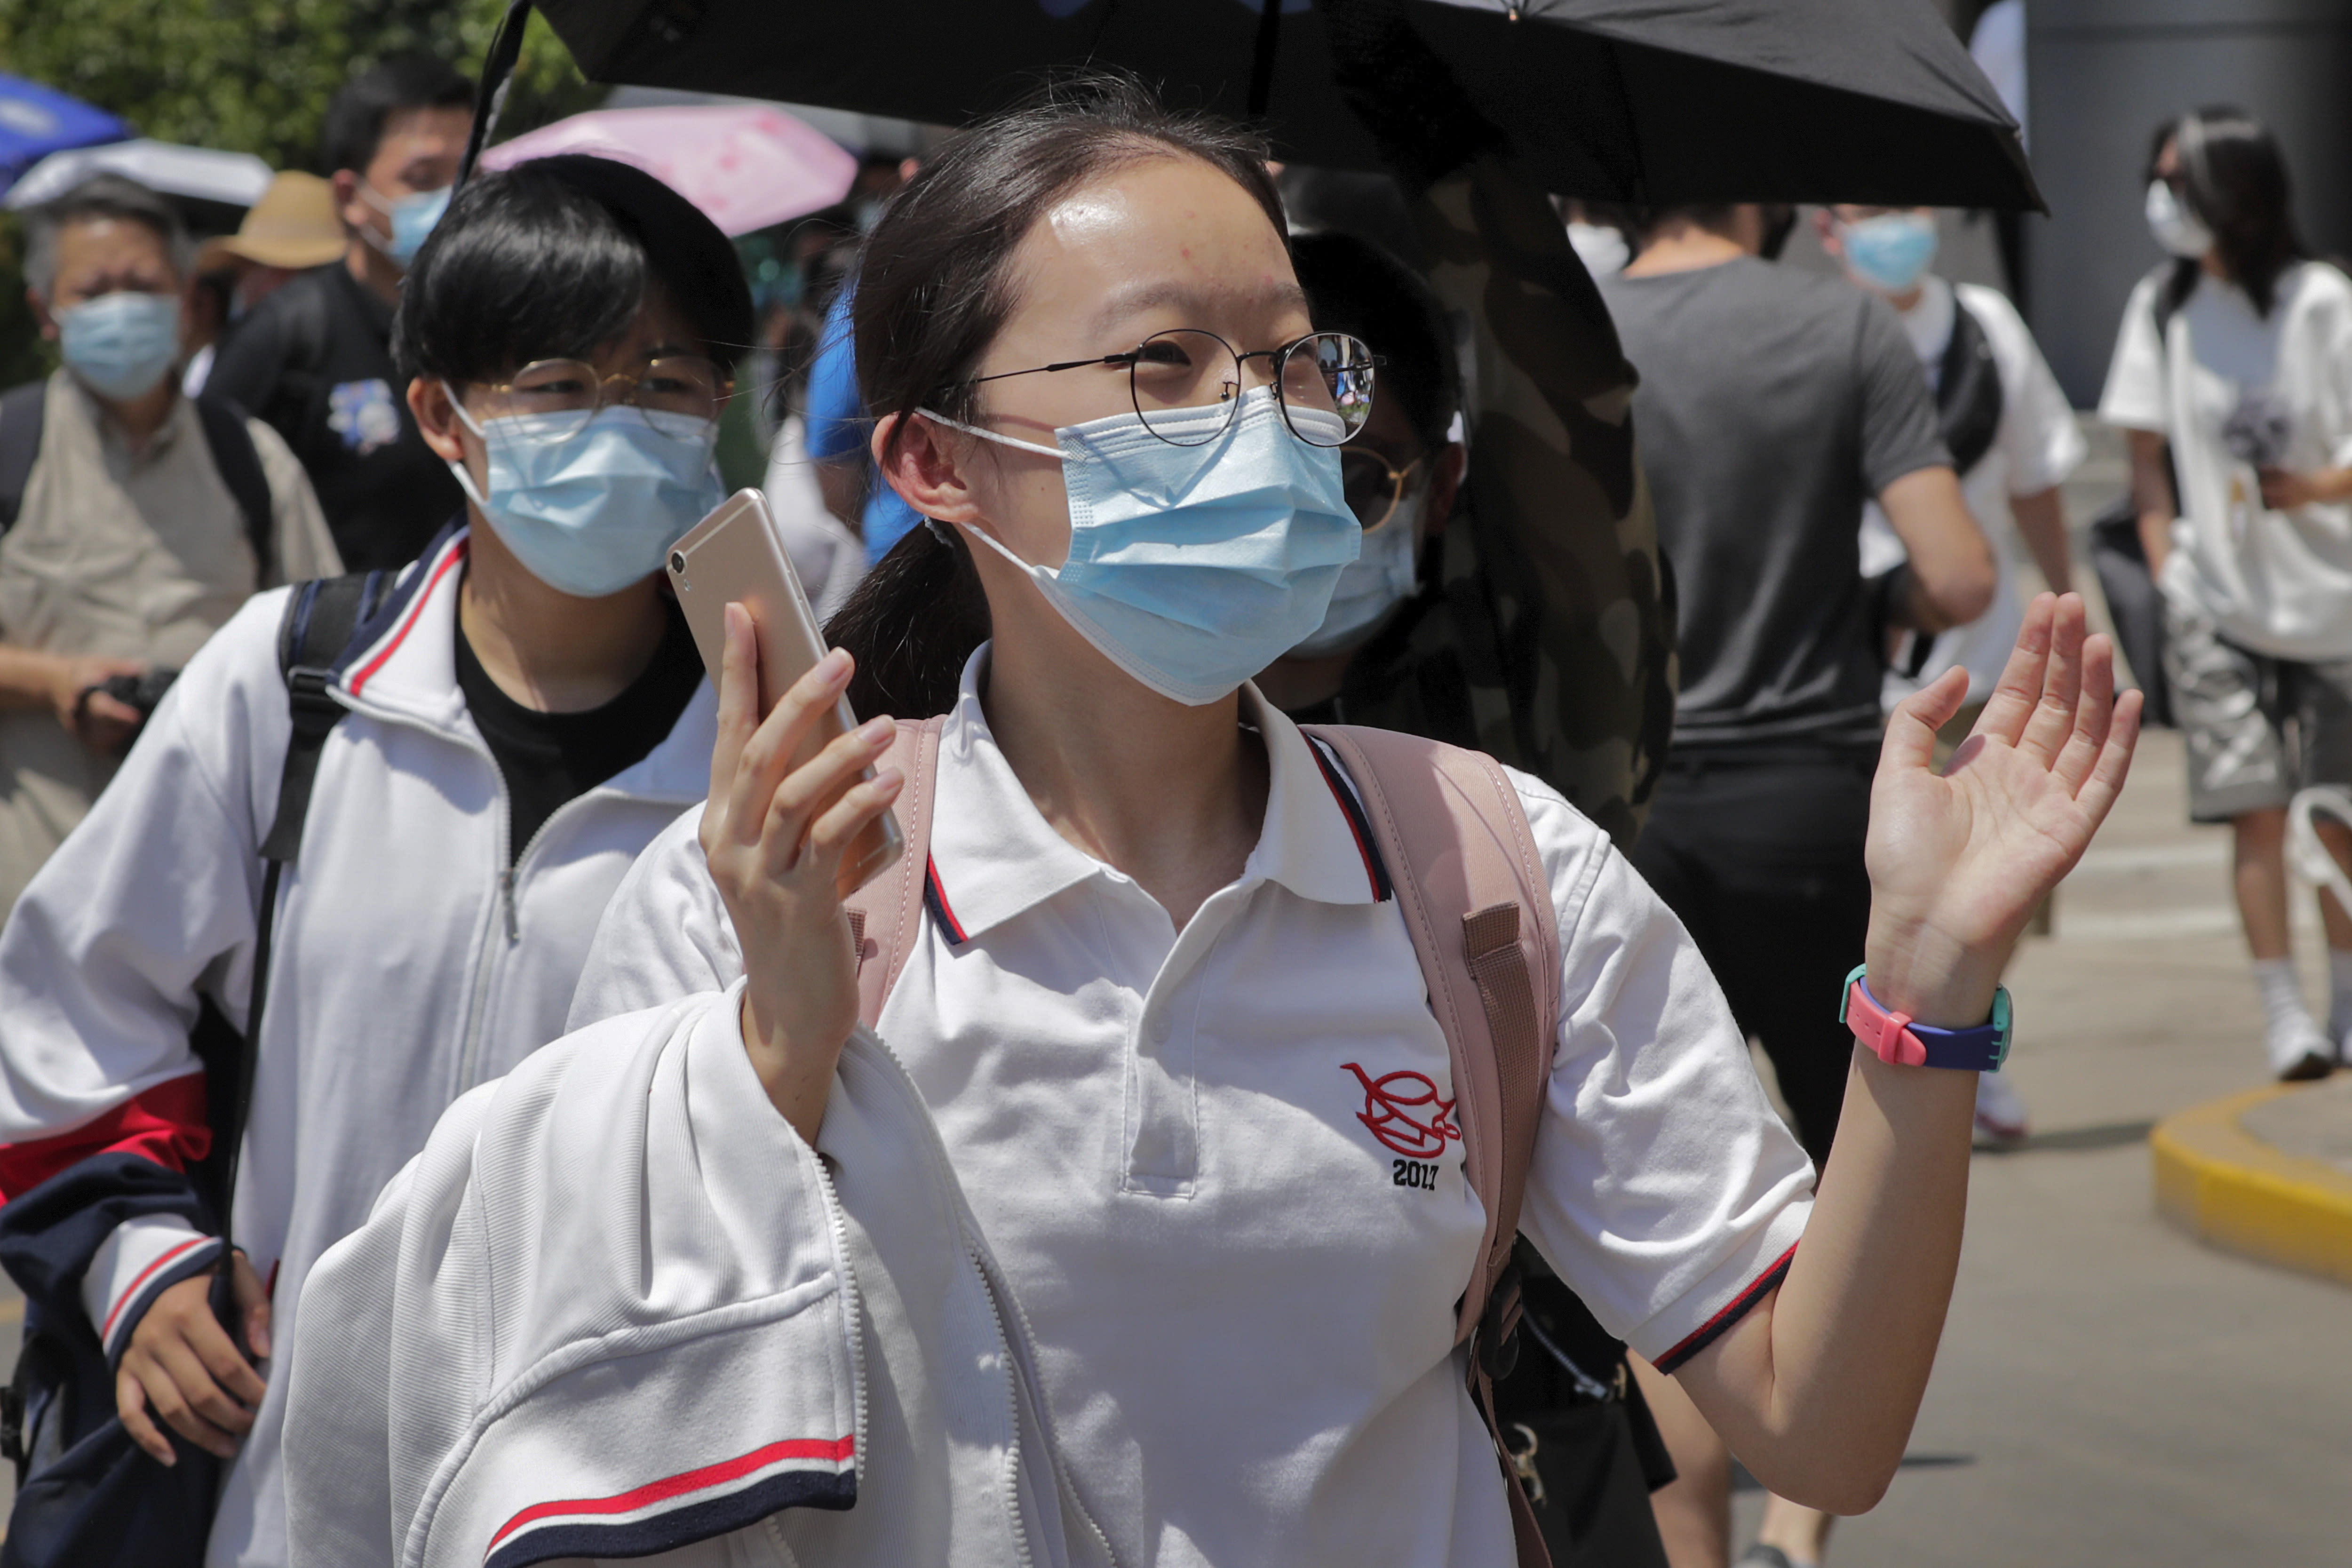 A student wearing a face mask to protect against the new coronavirus reacts as she leaves school after finishing the first day of China's national college entrance examinations, known as the gaokao, in Beijing, Tuesday, July 7, 2020. China's college entrance exams began in Beijing on Tuesday after being delayed by a month due to the coronavirus outbreak. (AP Photo/Andy Wong)